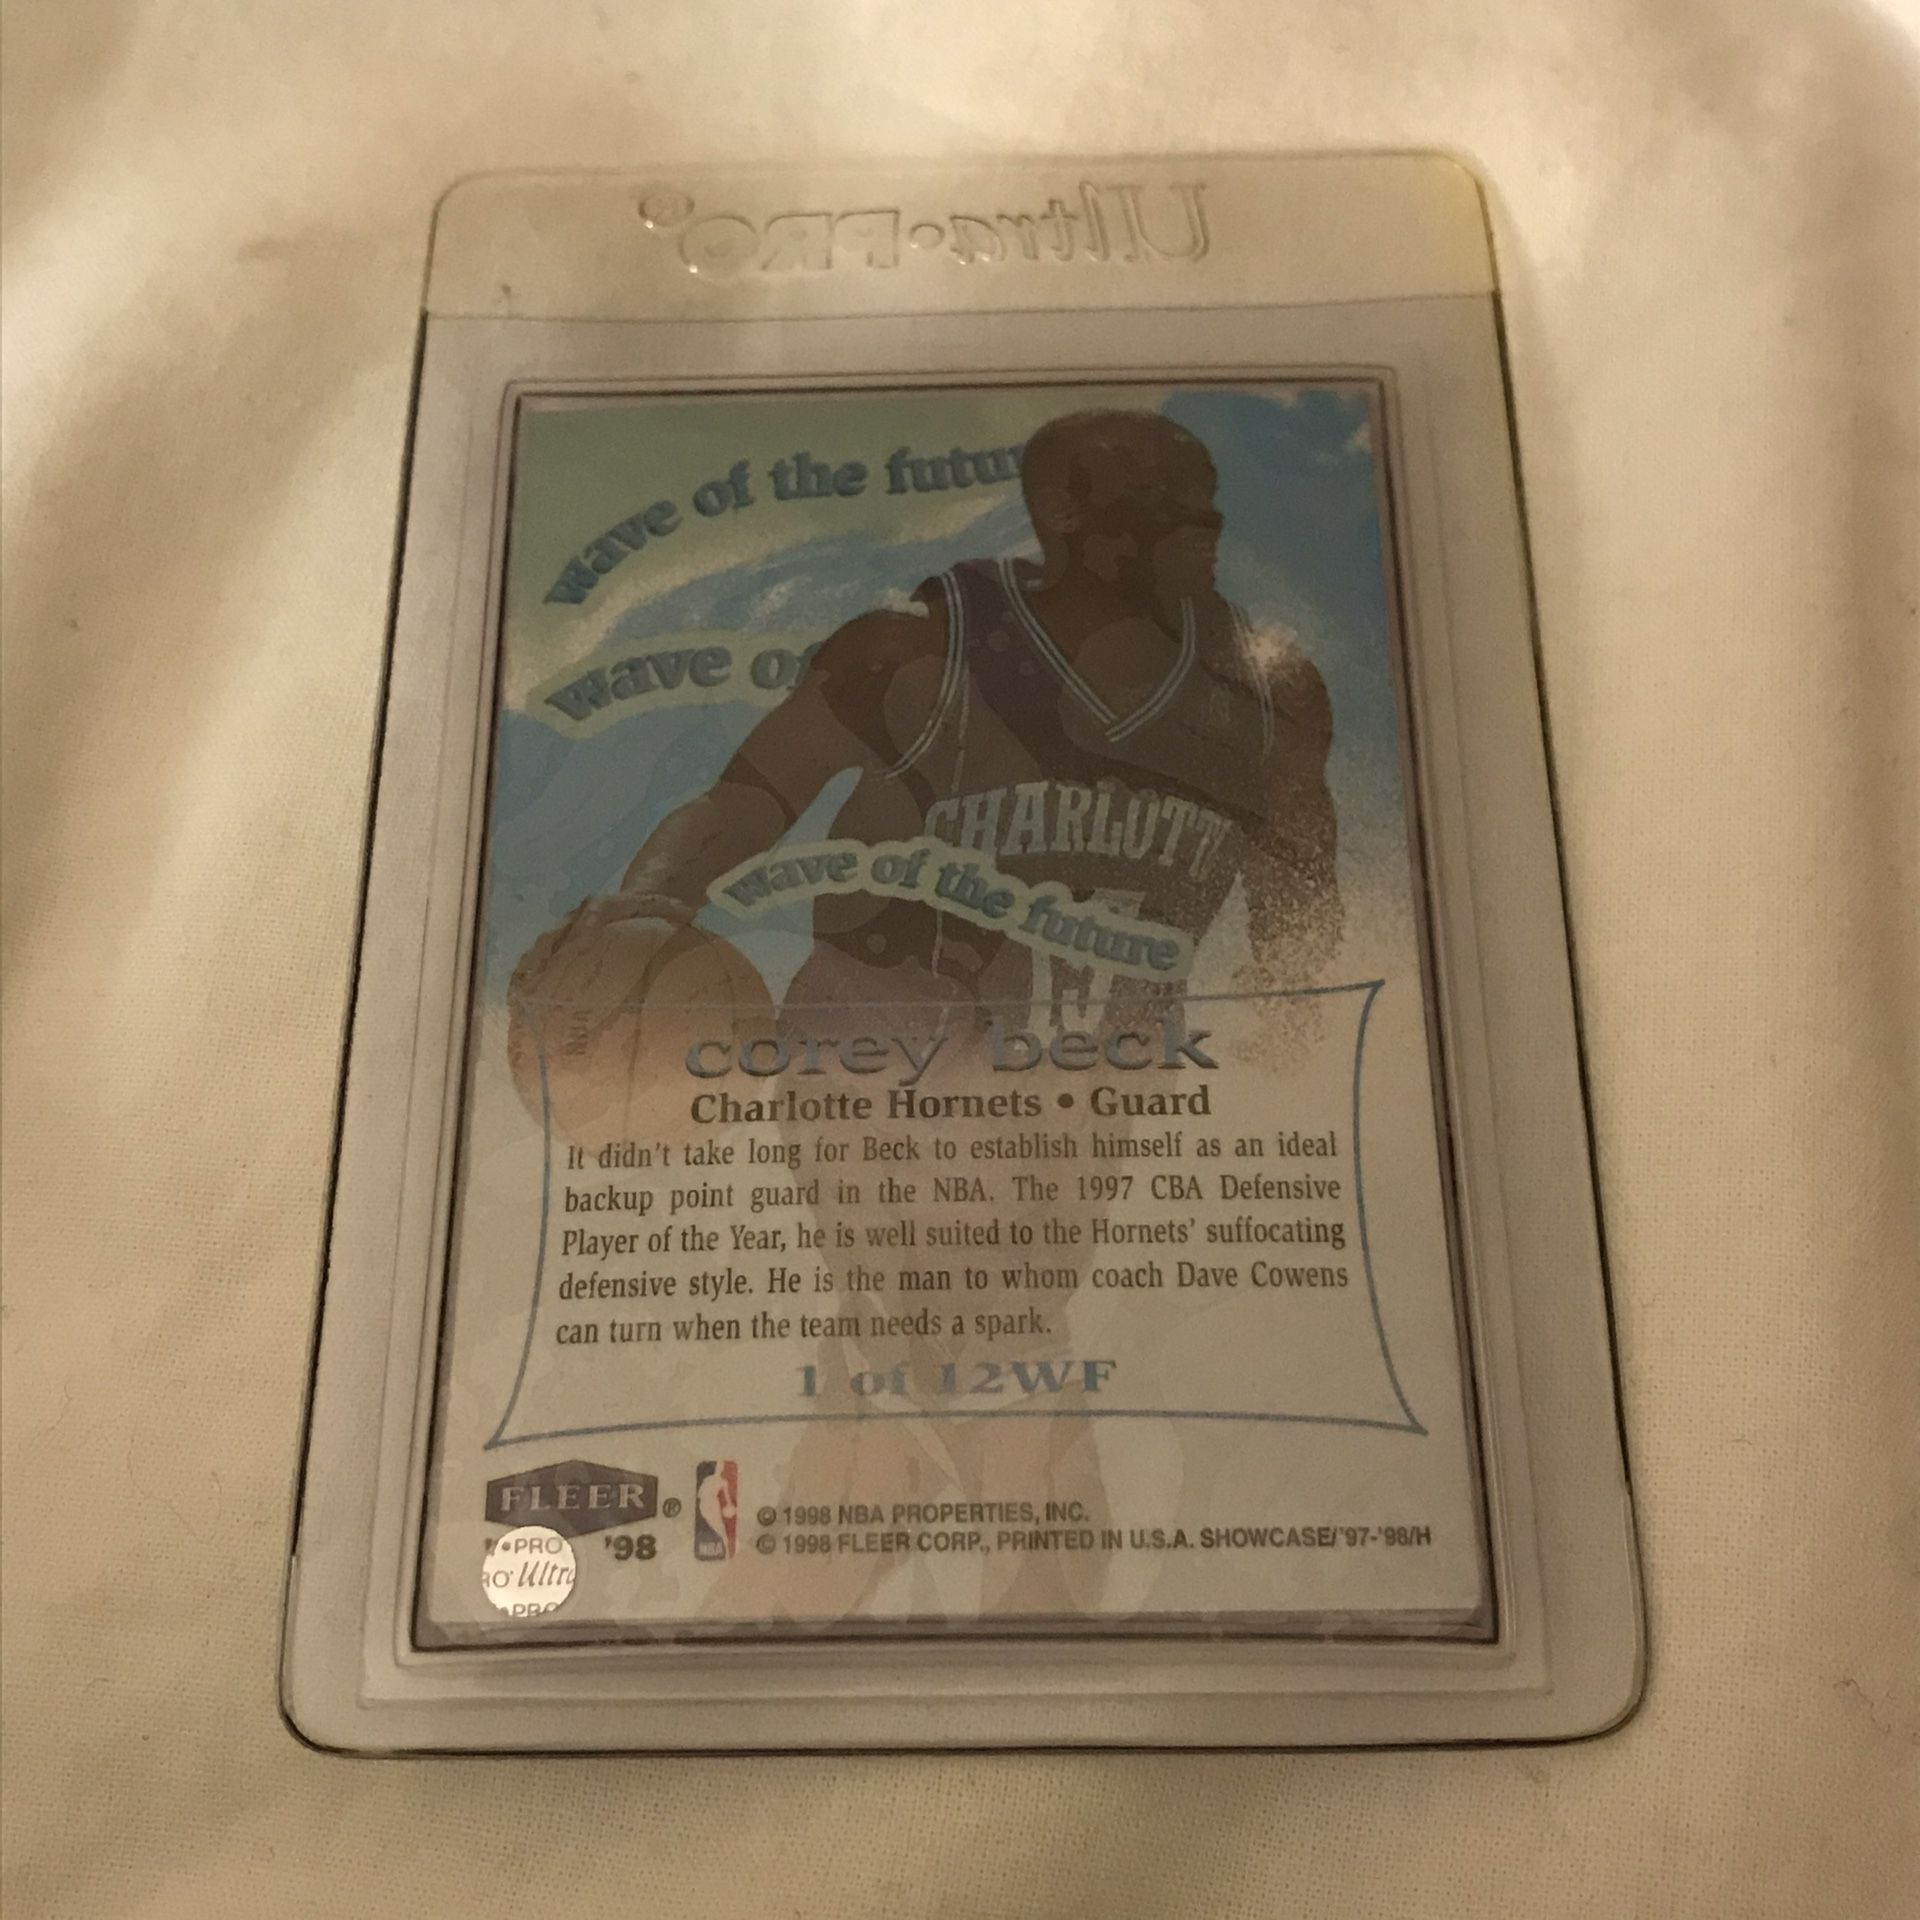 Corey Beck Flair Showcase Wave of the Future Card